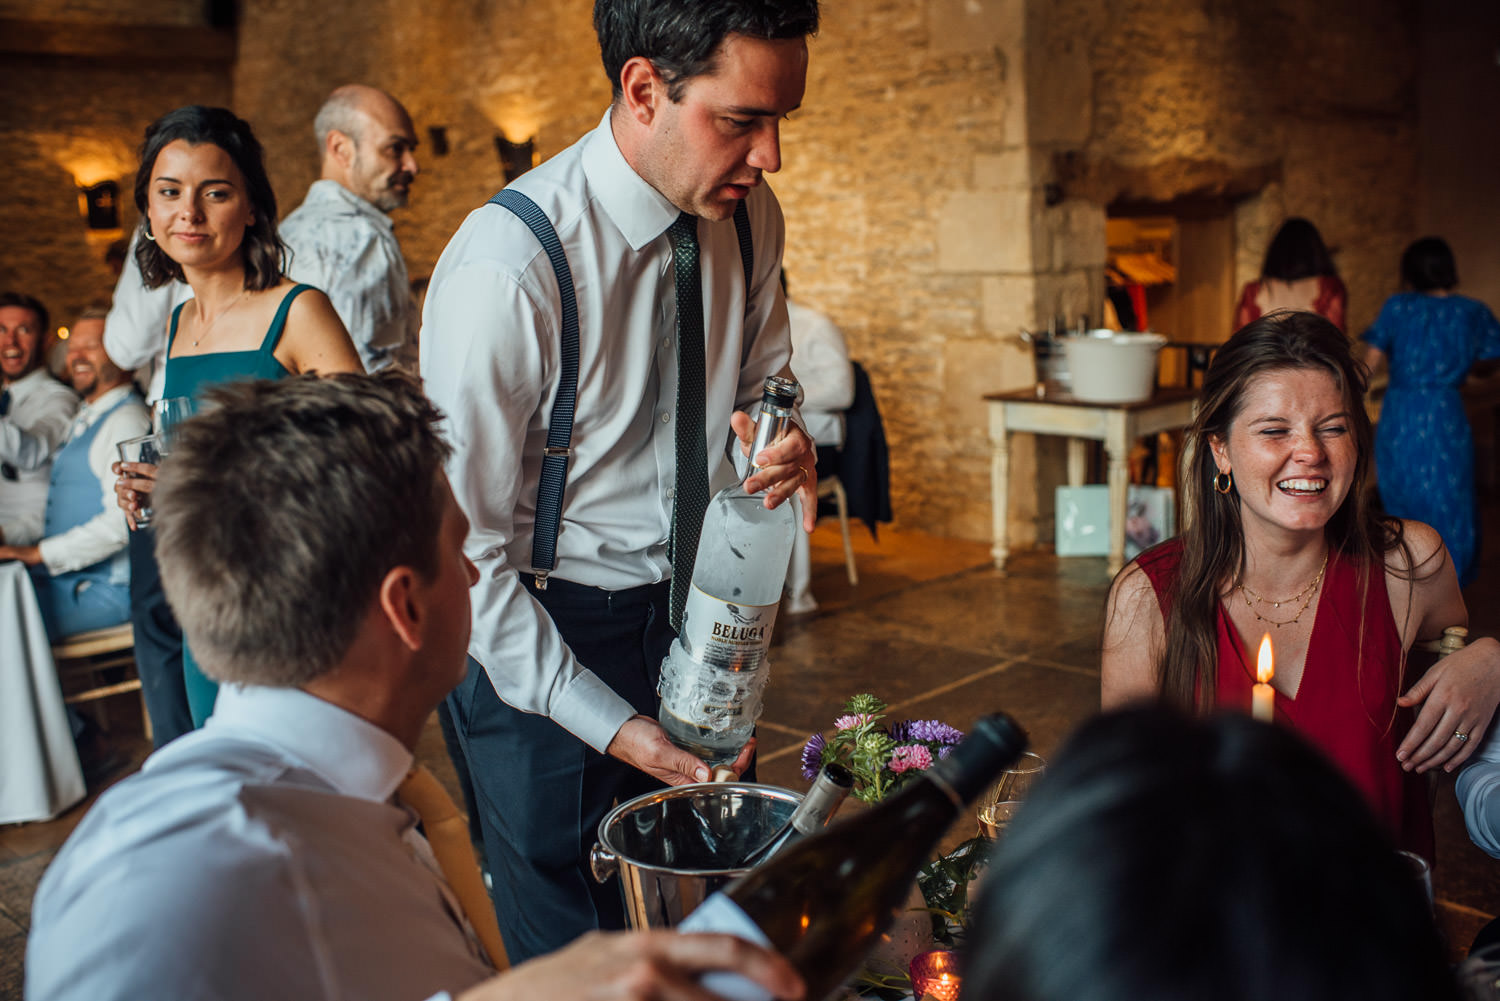 cocktail wedding drinks at oxleaze barn wedding